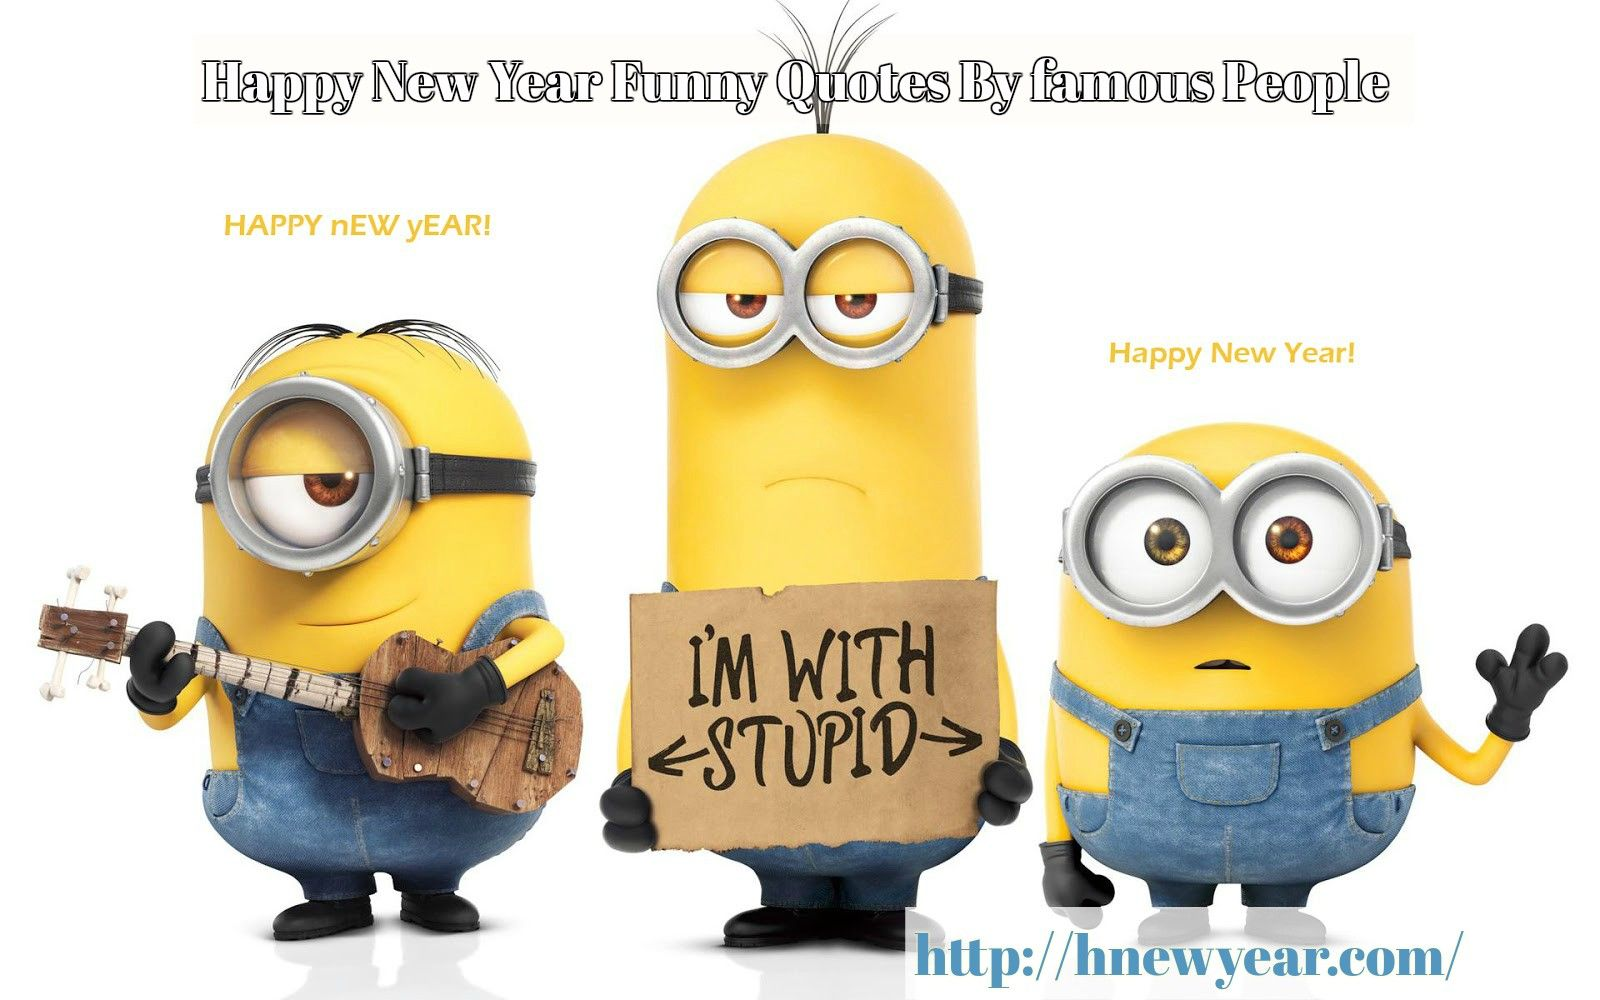 Happy New Year Funny Quotes Are Now Available Here Funny Quotes Will Give You Some Happiness I The Time Of Sadness Hap Minions Wallpaper Minion Movie Minions